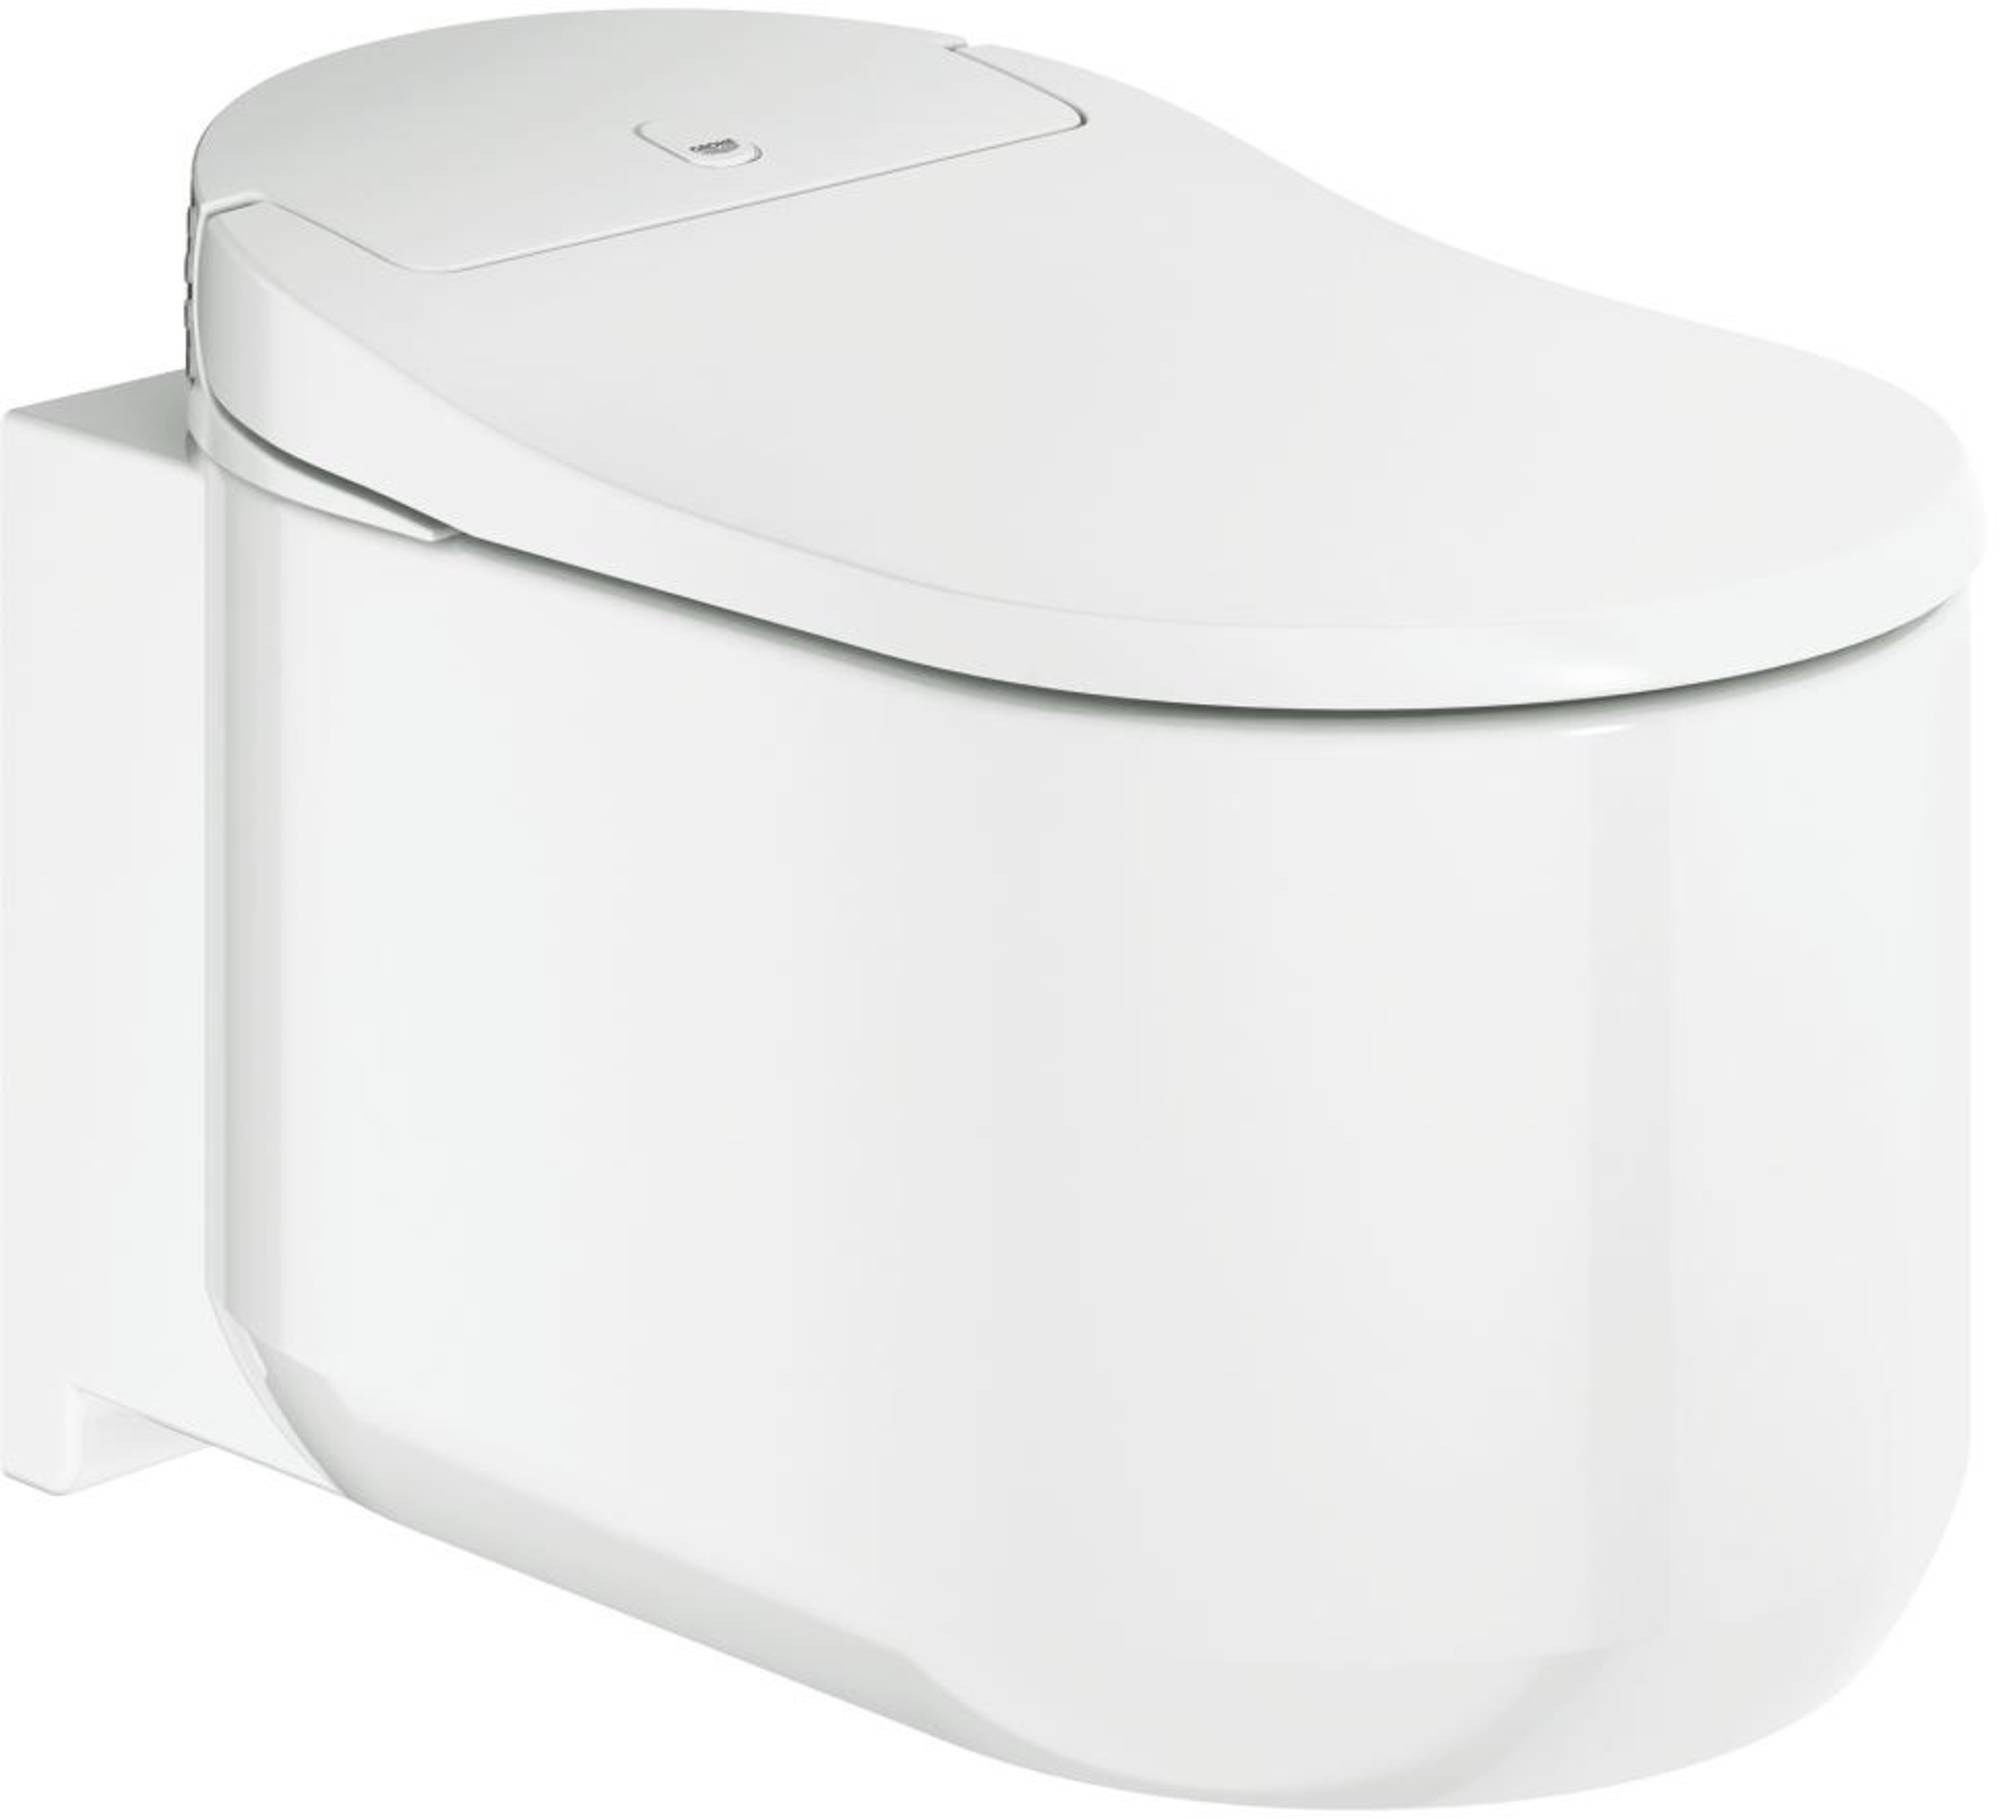 Productafbeelding van Grohe Sensia Arena douche WC systeem wit 39354sh1